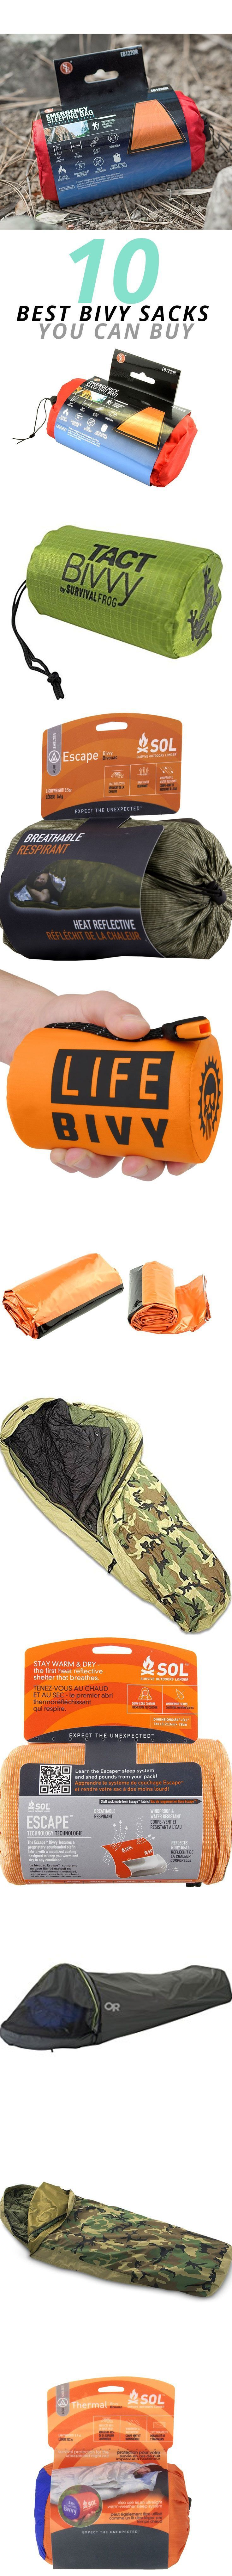 Best Bivy Sack   Get the 10 bestsellers, expensive and cheap Best Bivy Sack what you can buy Online.  Expensive, Cheap and Best Seller Bivy Sack If you think to buy Bivy Sack than this article can be a guide for you.  This list was generated from the top